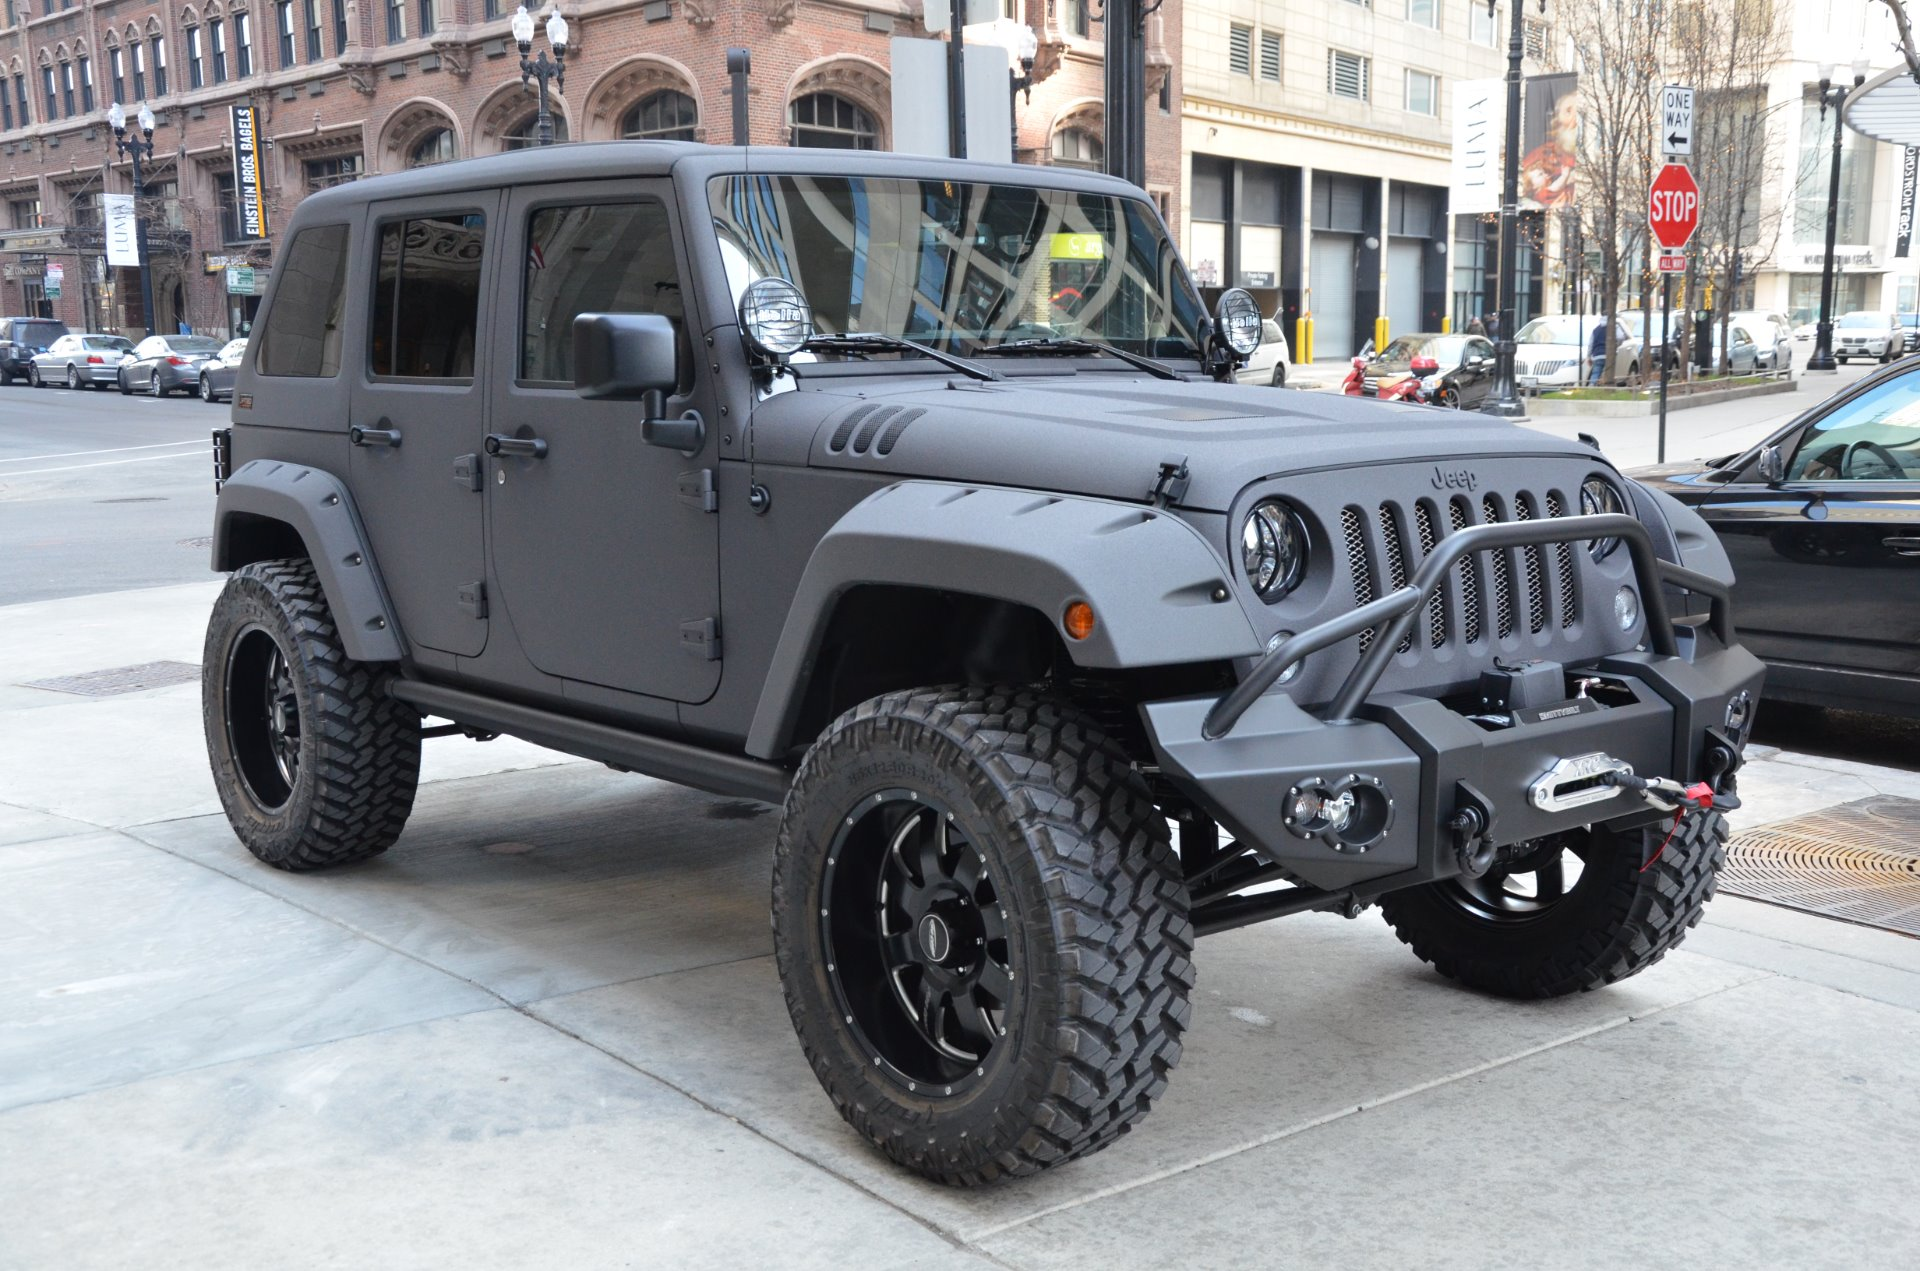 2015 Jeep Wrangler Unlimited Rubicon Stock GC CHRIS40 for sale